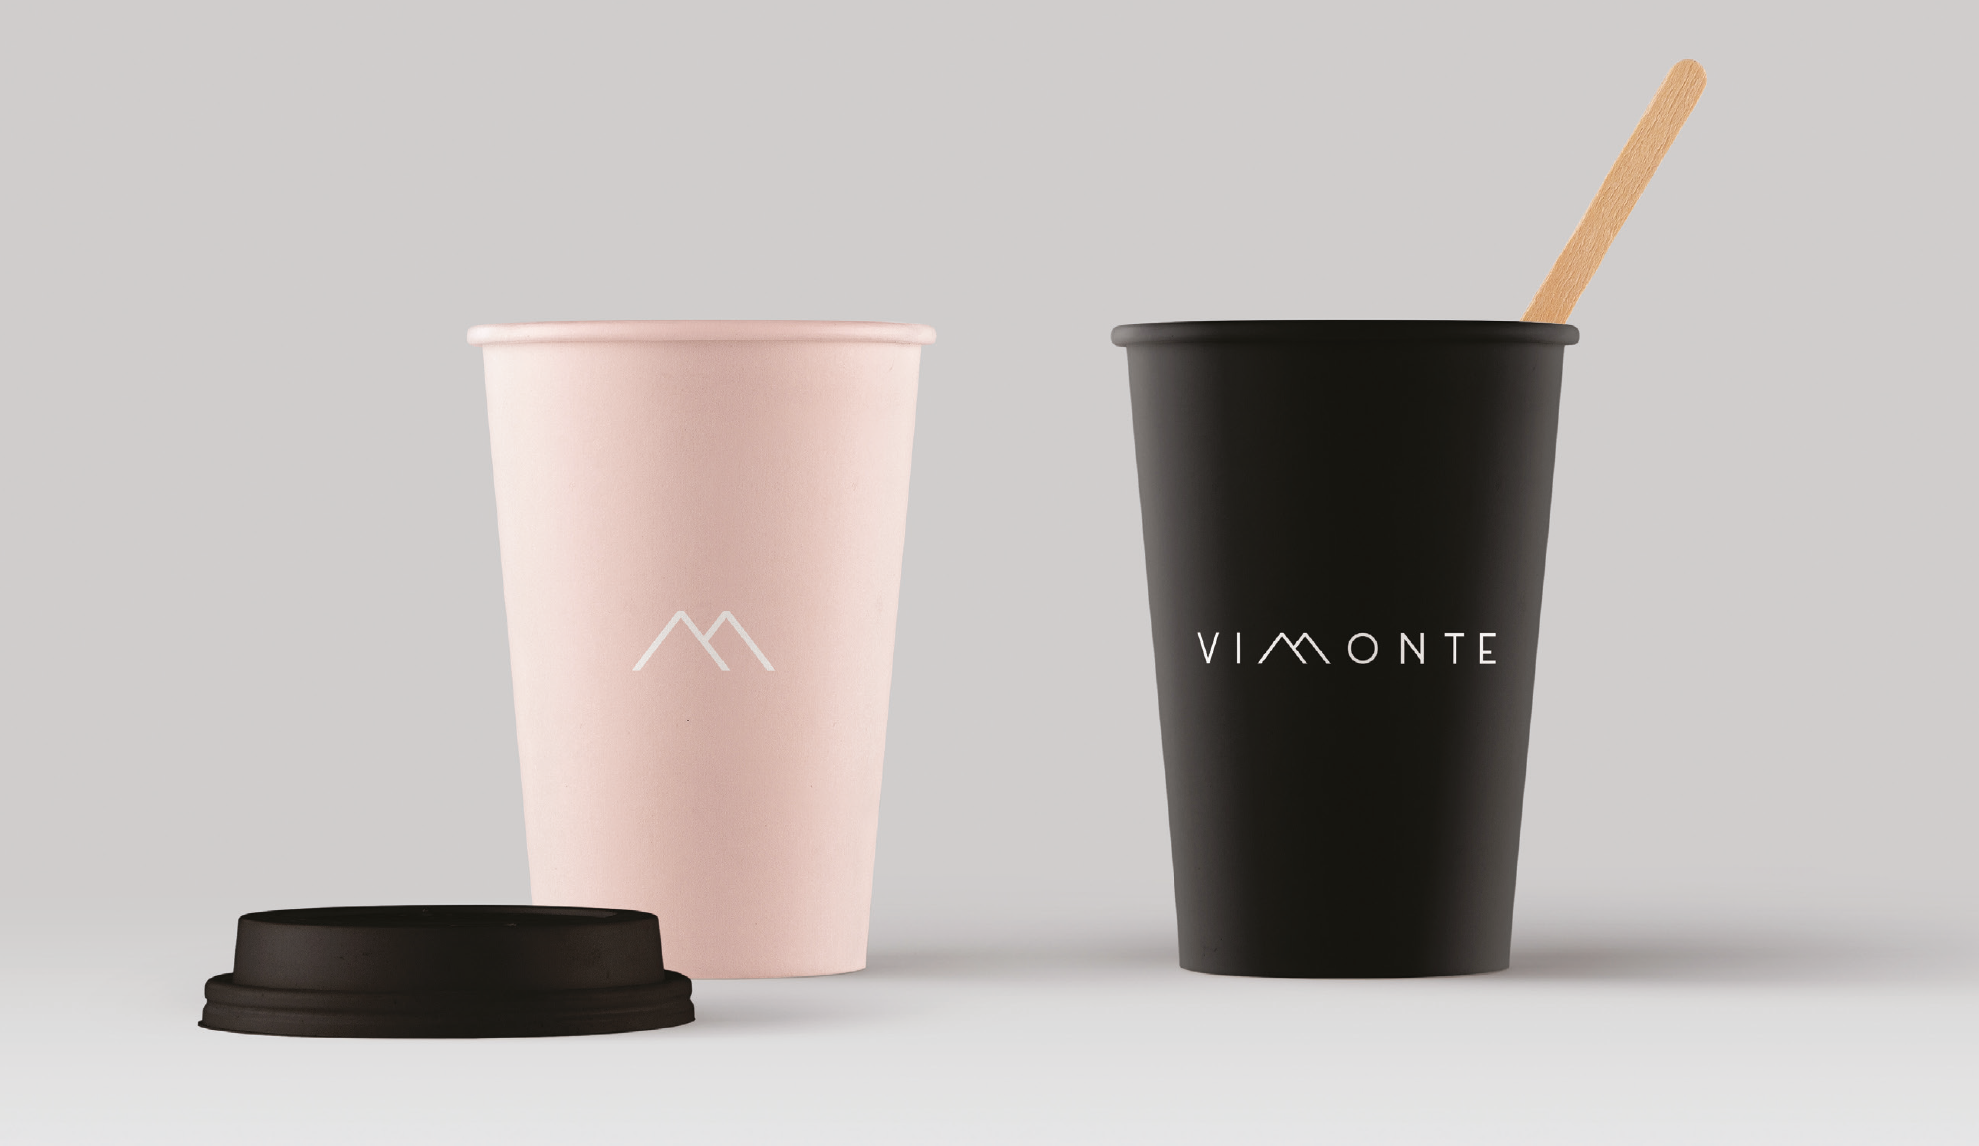 Branding for VIMONTE-image-left-down